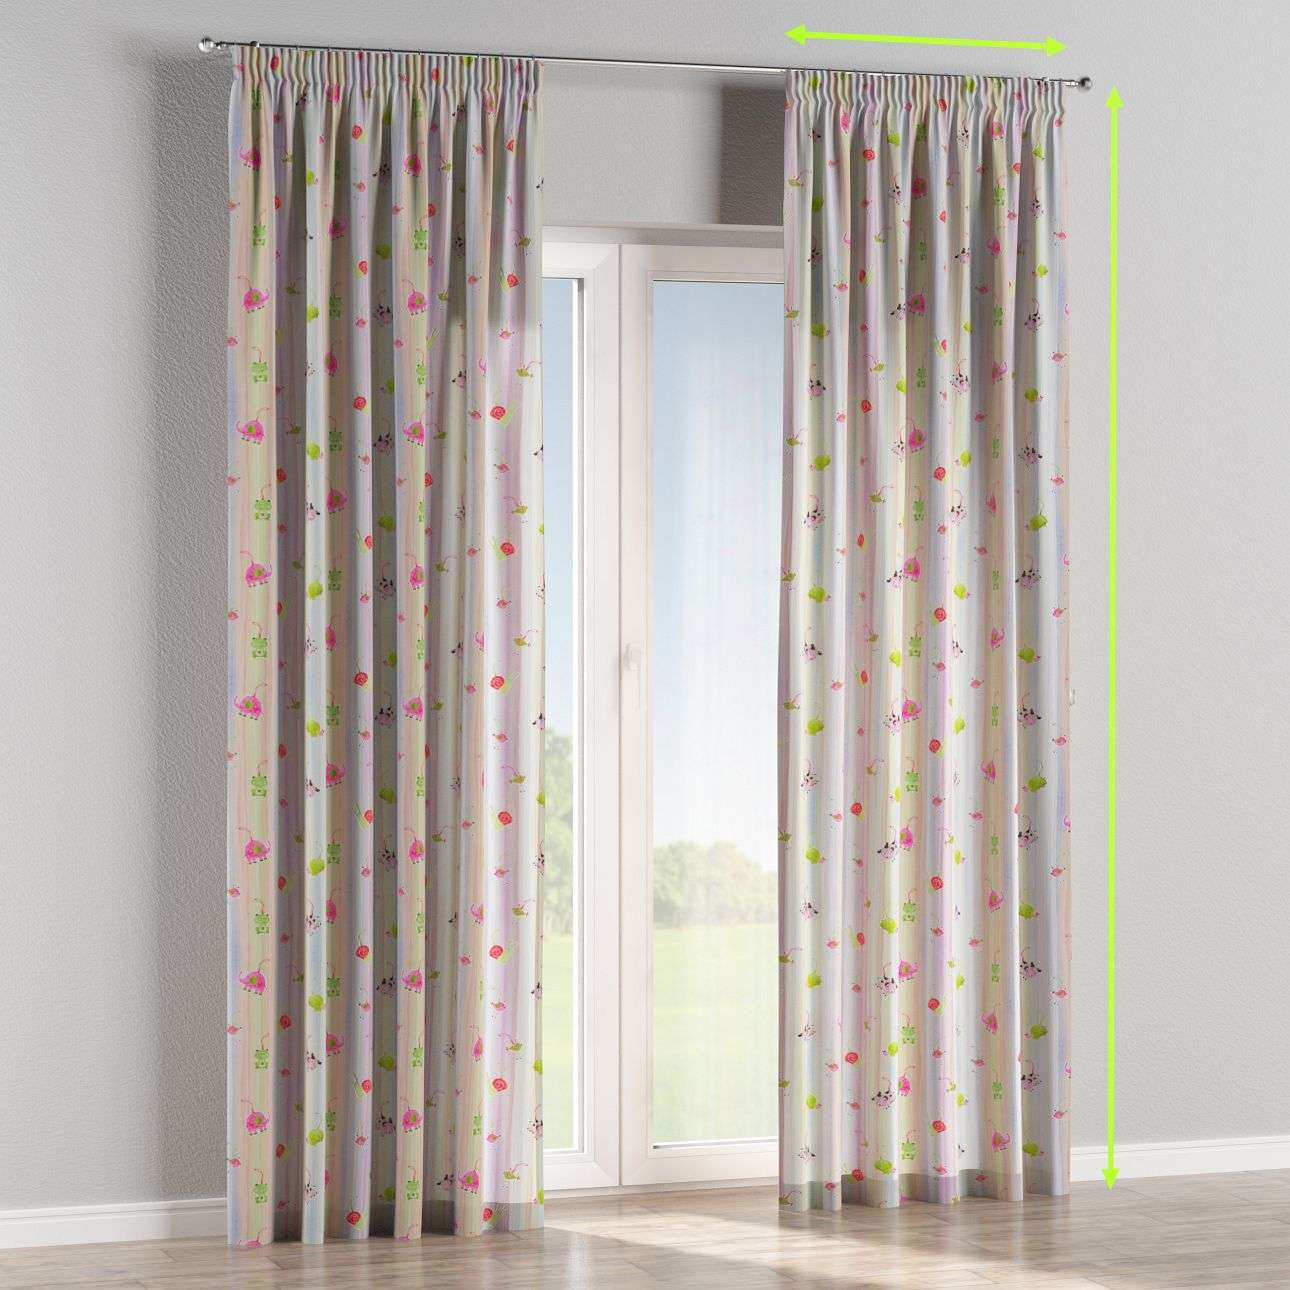 Pencil pleat lined curtains in collection Apanona, fabric: 151-05